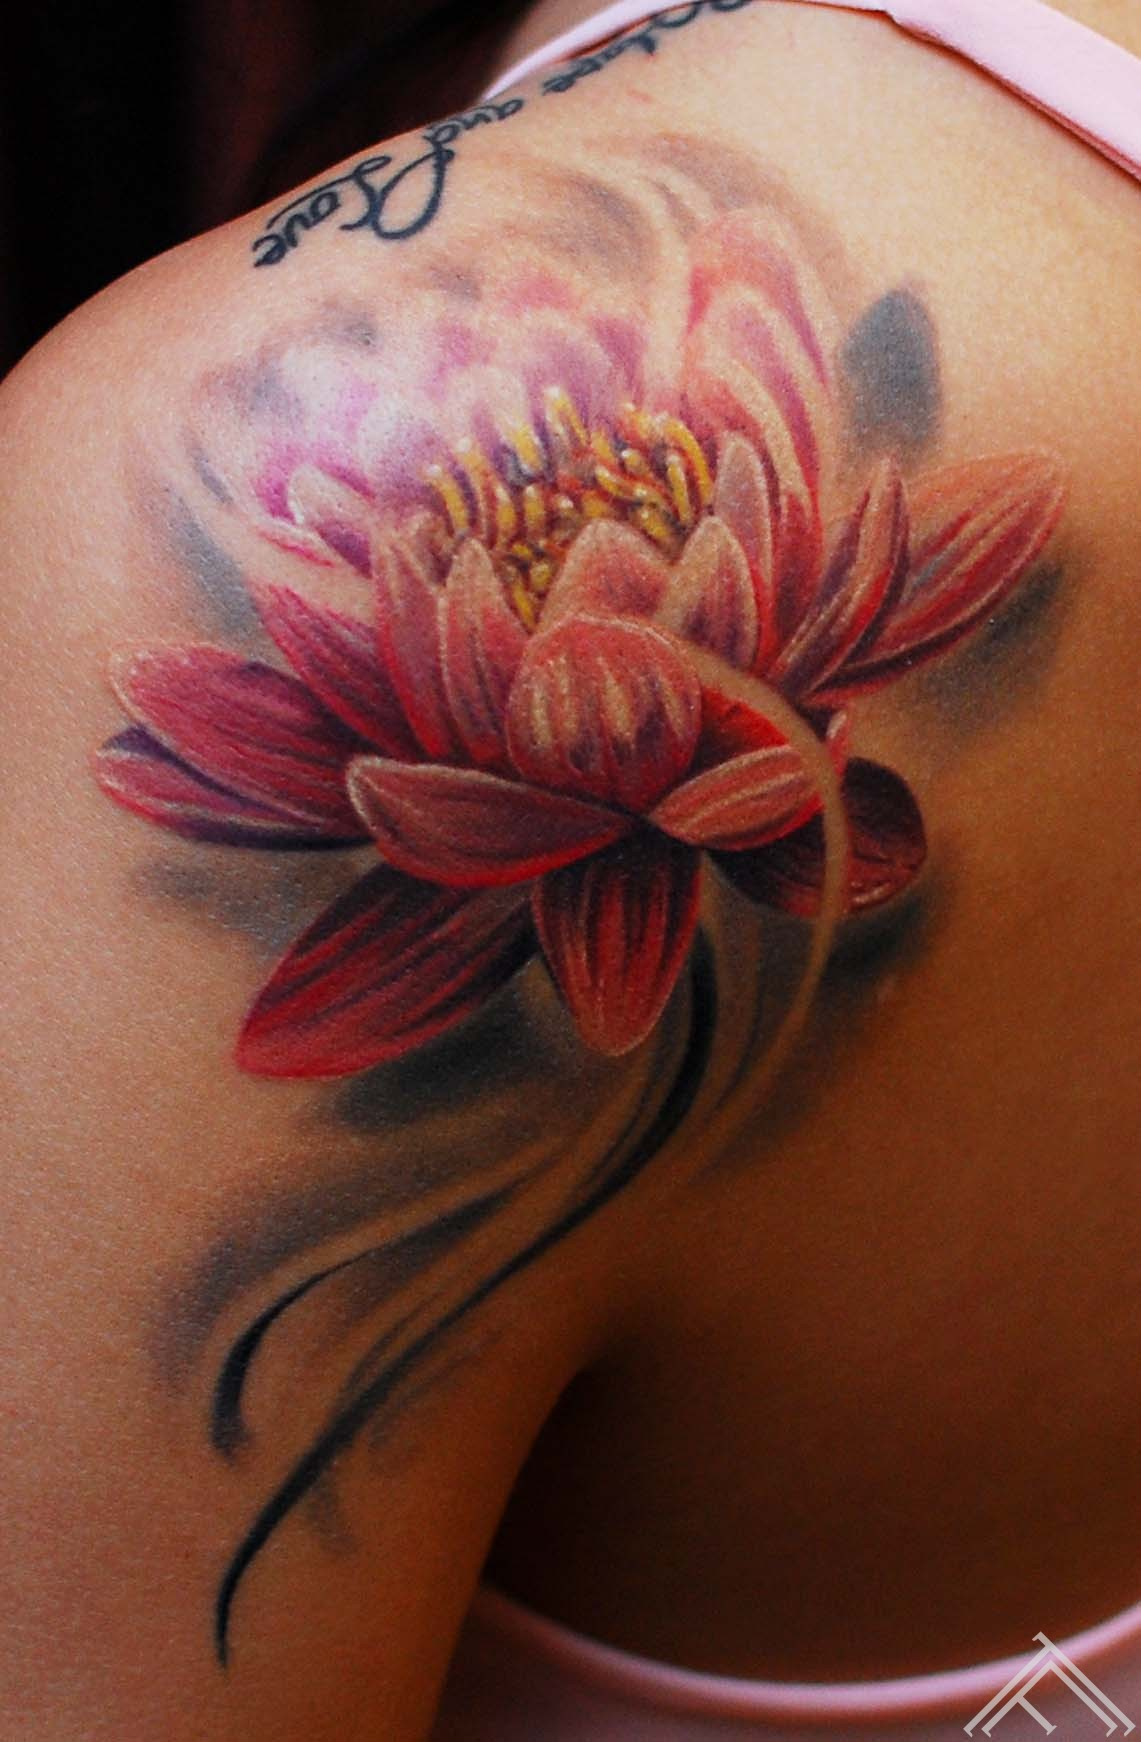 lotus_flower_tattoo_marispavlo_tattoofrequency_studioinriga_closer